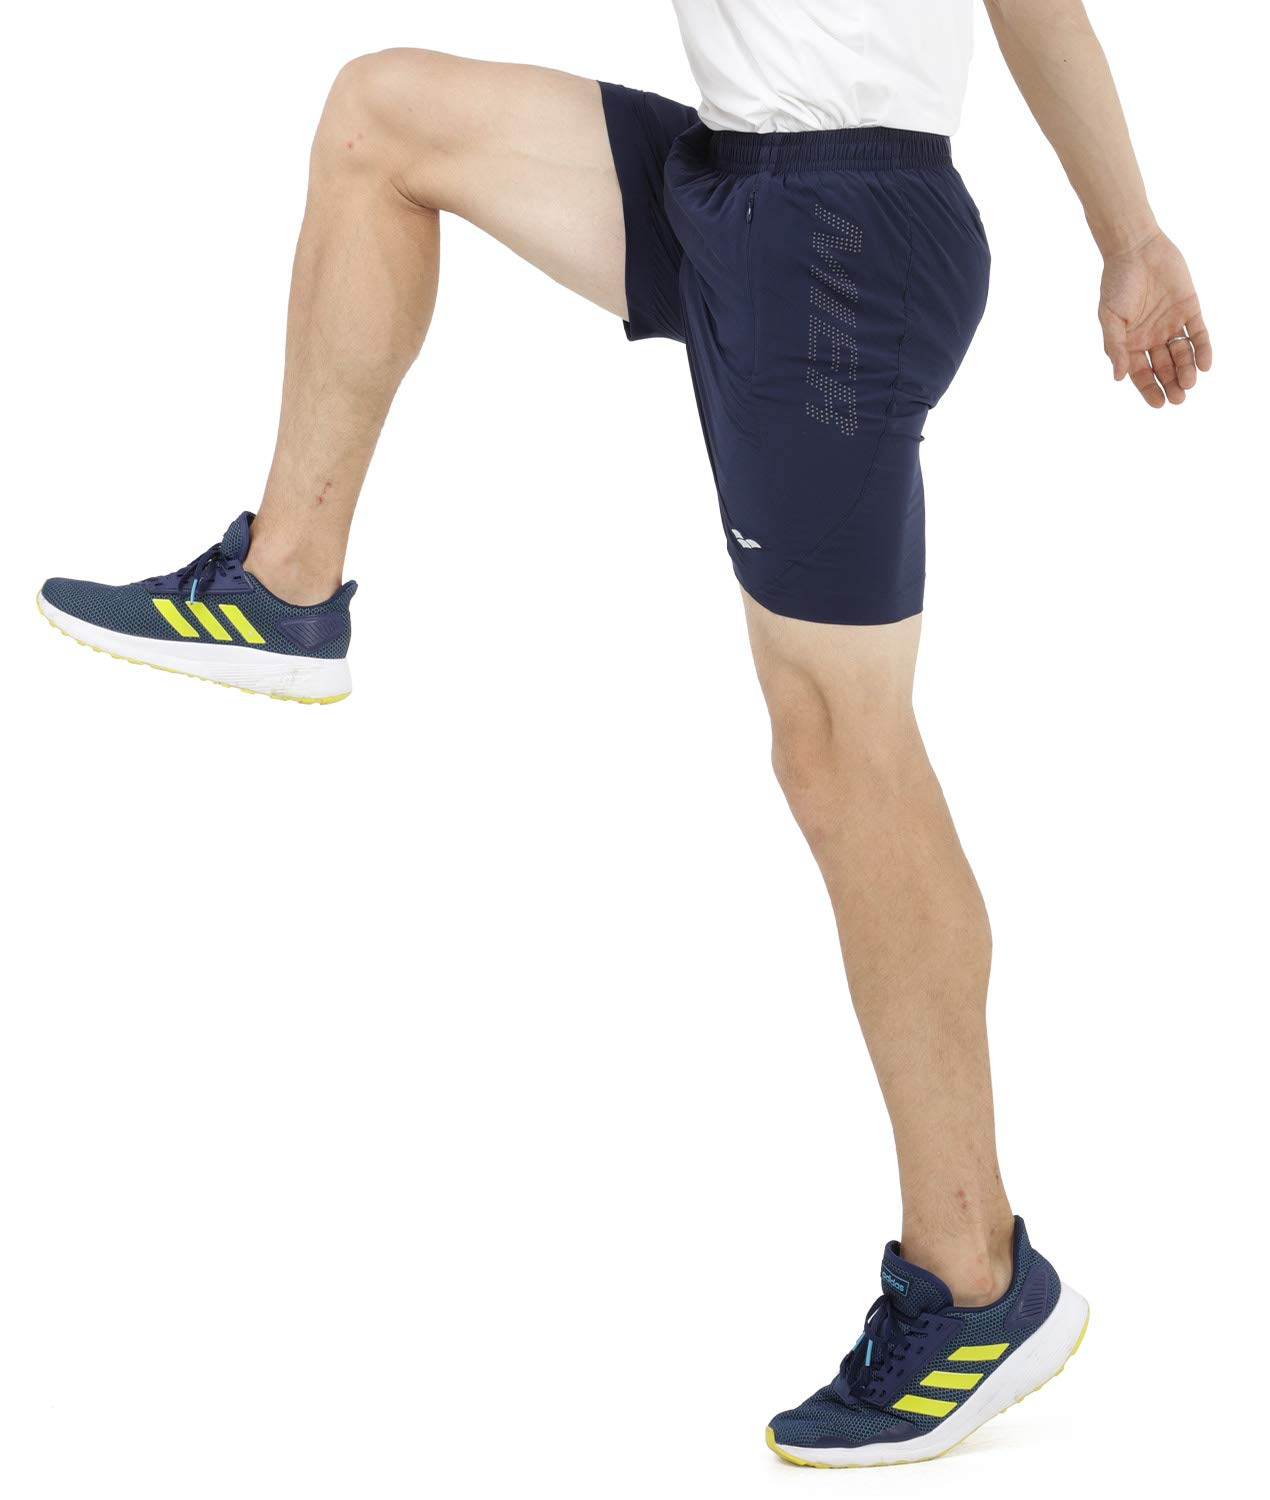 MIER Men's 5 Inches Running Athletic Shorts Quick Dry Workout Training Tennis Shorts with 4 Pockets, No Liner, Lightweight